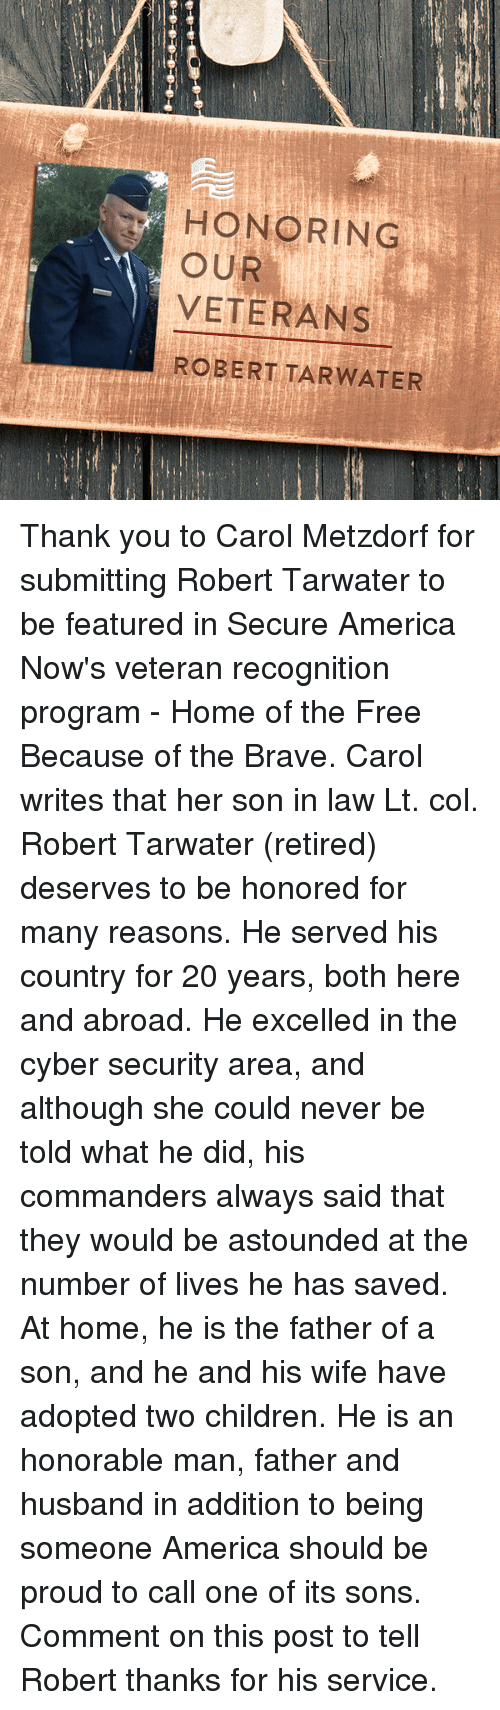 cyber security: HONORING  OUR  VETERANS  ROBERT TAR WATER Thank you to Carol Metzdorf for submitting Robert Tarwater to be featured in Secure America Now's veteran recognition program - Home of the Free Because of the Brave.  Carol writes that her son in law Lt. col. Robert Tarwater (retired) deserves to be honored for many reasons. He served his country for 20 years, both here and abroad. He excelled in the cyber security area, and although she could never be told what he did, his commanders always said that they would be astounded at the number of lives he has saved. At home, he is the father of a son, and he and his wife have adopted two children. He is an honorable man, father and husband in addition to being someone America should be proud to call one of its sons.  Comment on this post to tell Robert thanks for his service.